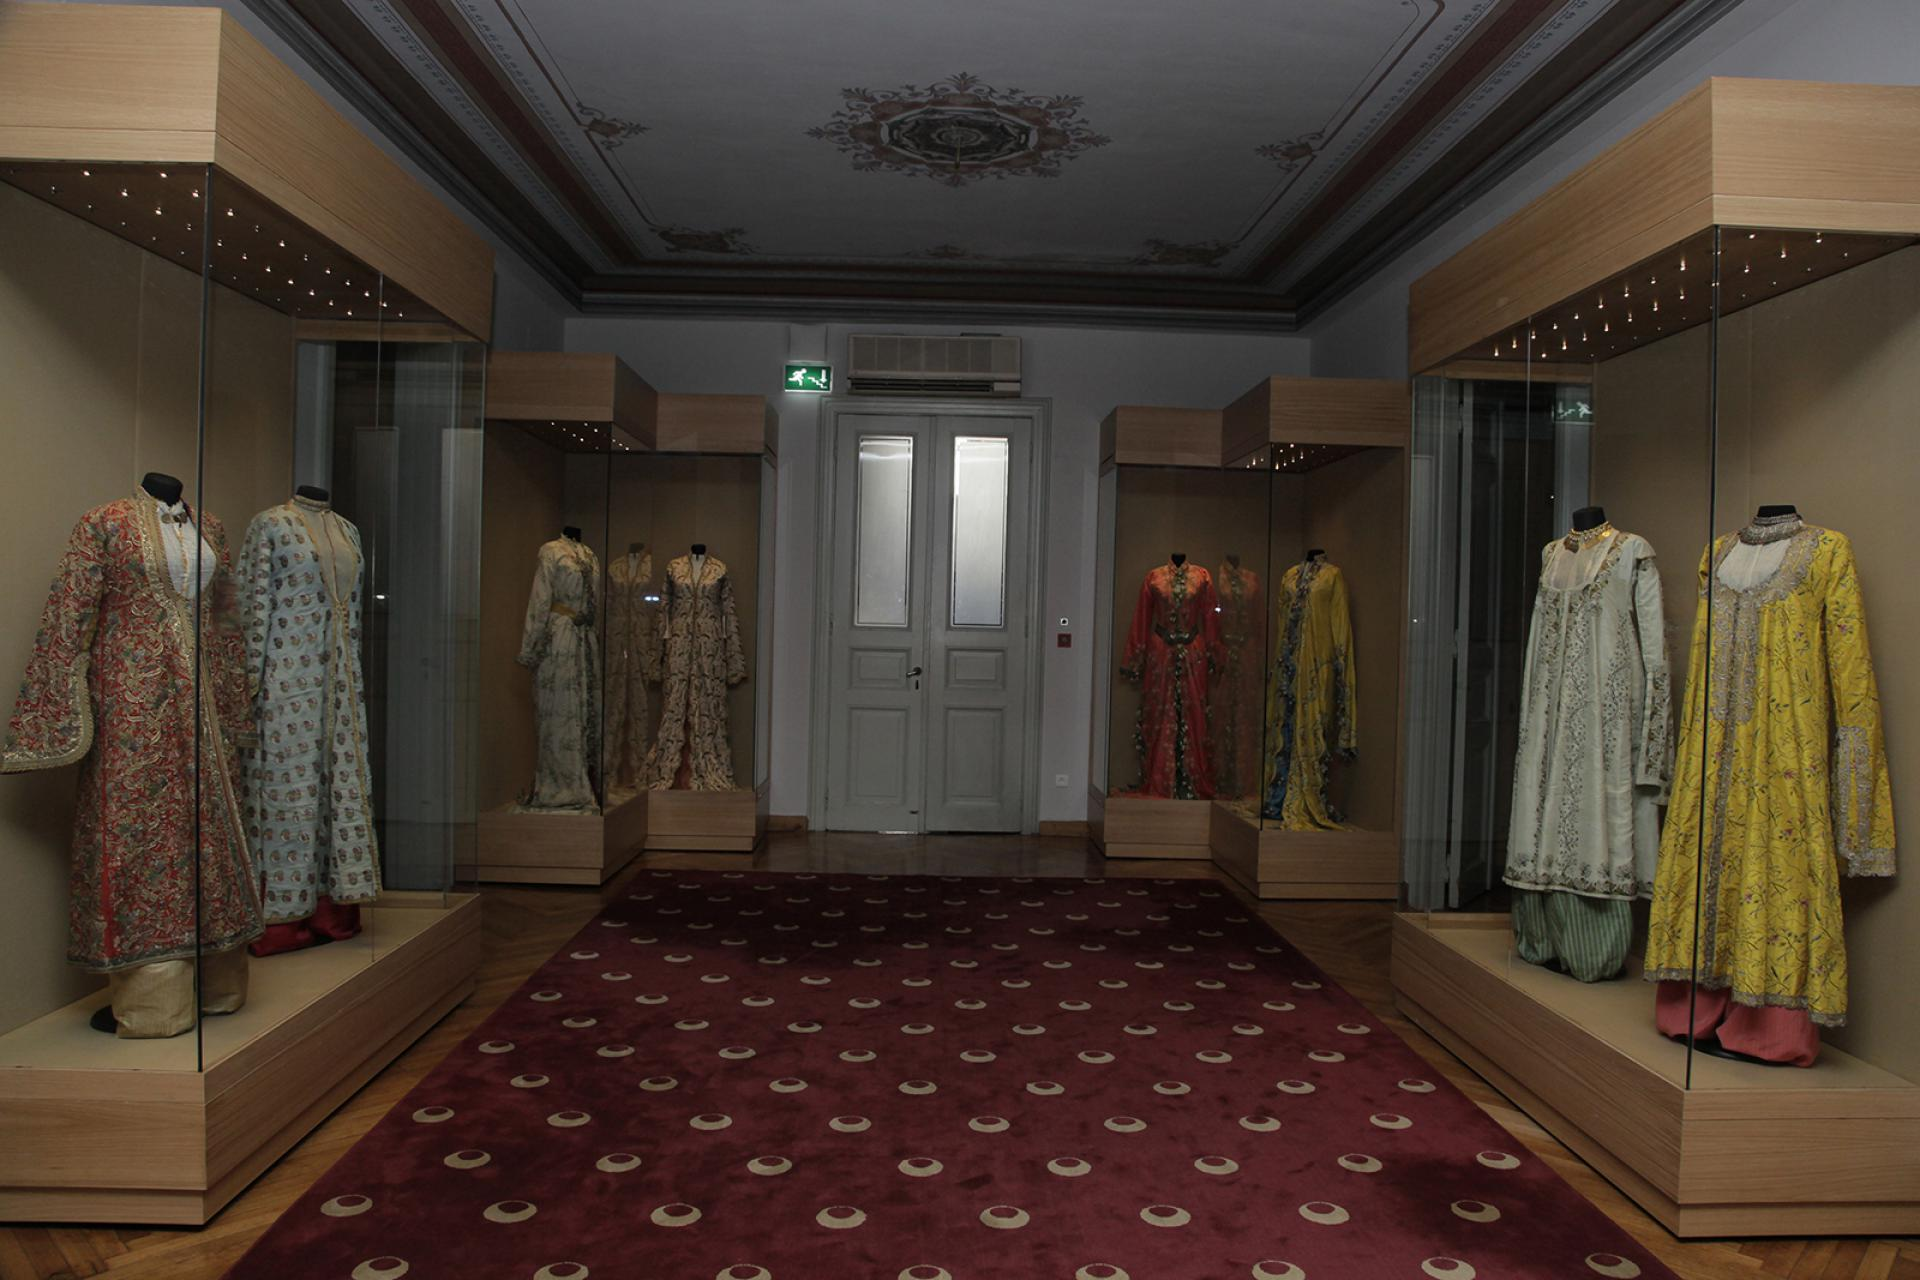 WOMEN'S COSTUME OF THE LATE OTTOMAN ERA Sadberk Hanım Museum Collection - EXHIBITIONS - Sadberk Hanım Museum